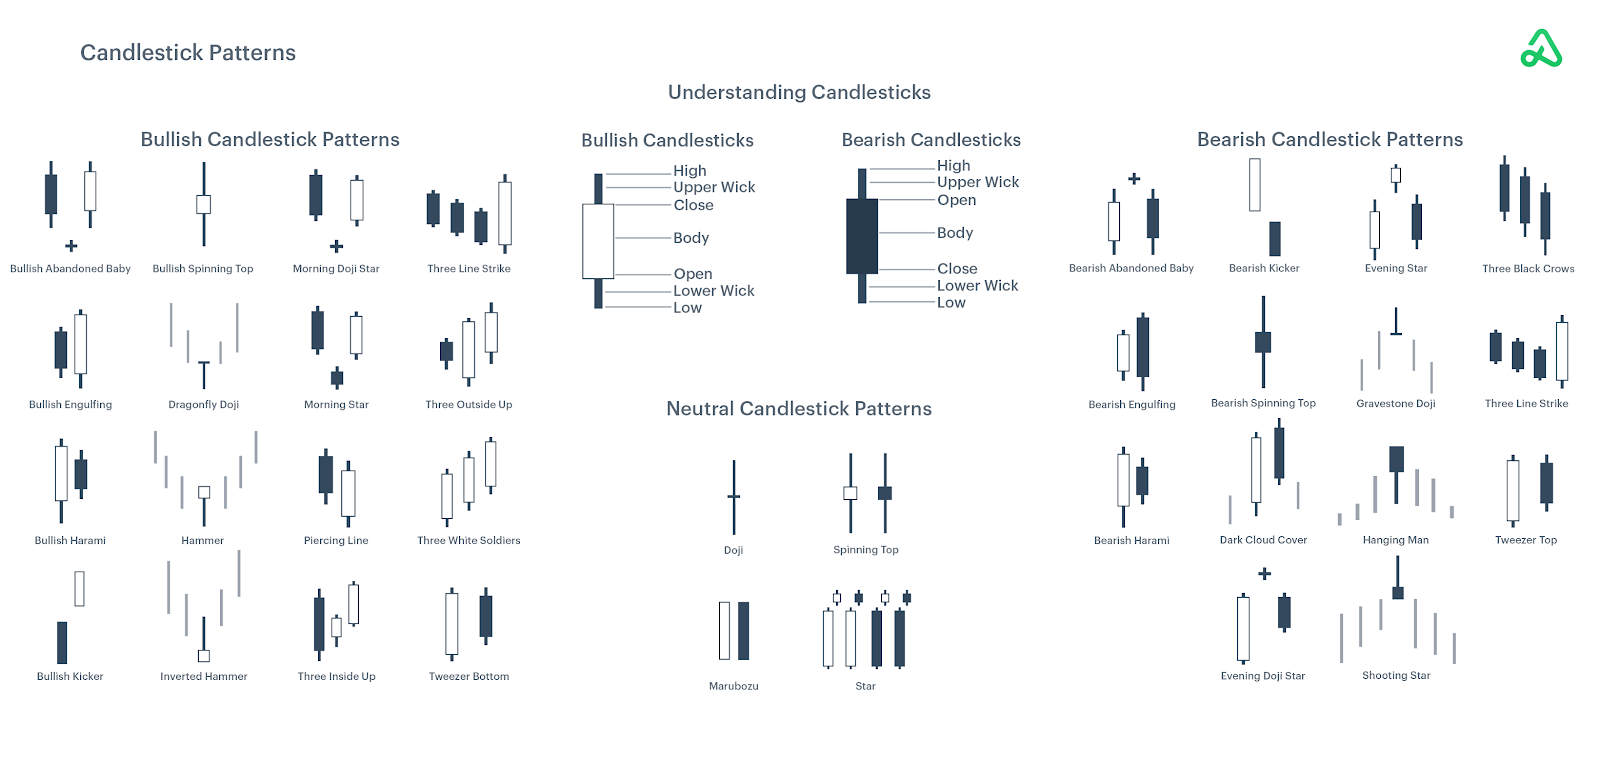 Candlestick Patterns Summary Guide image